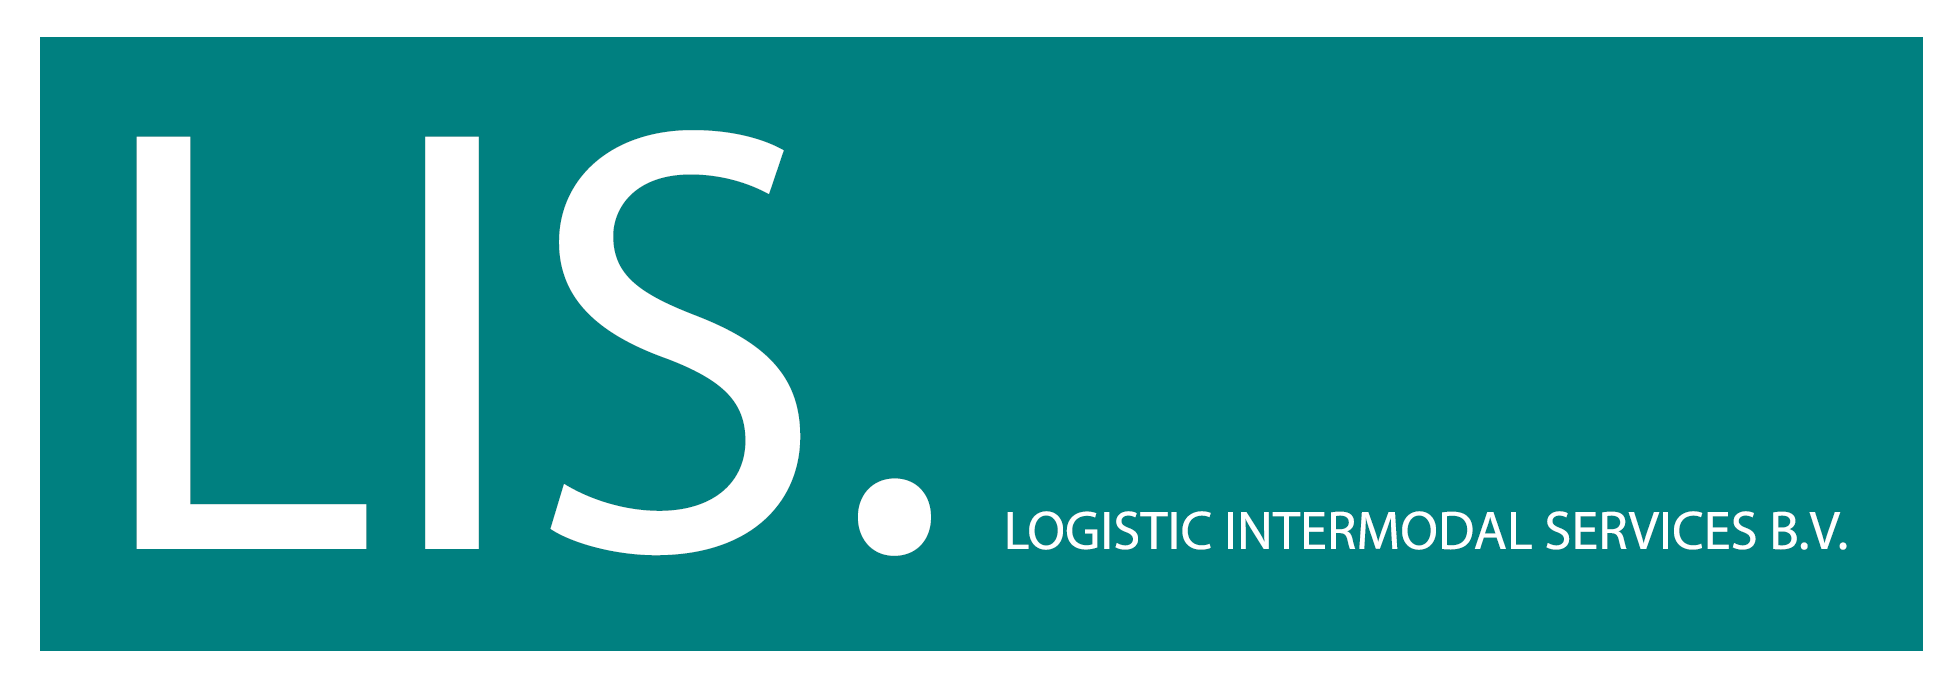 LIS - Logistic Intermodal Services B.V.